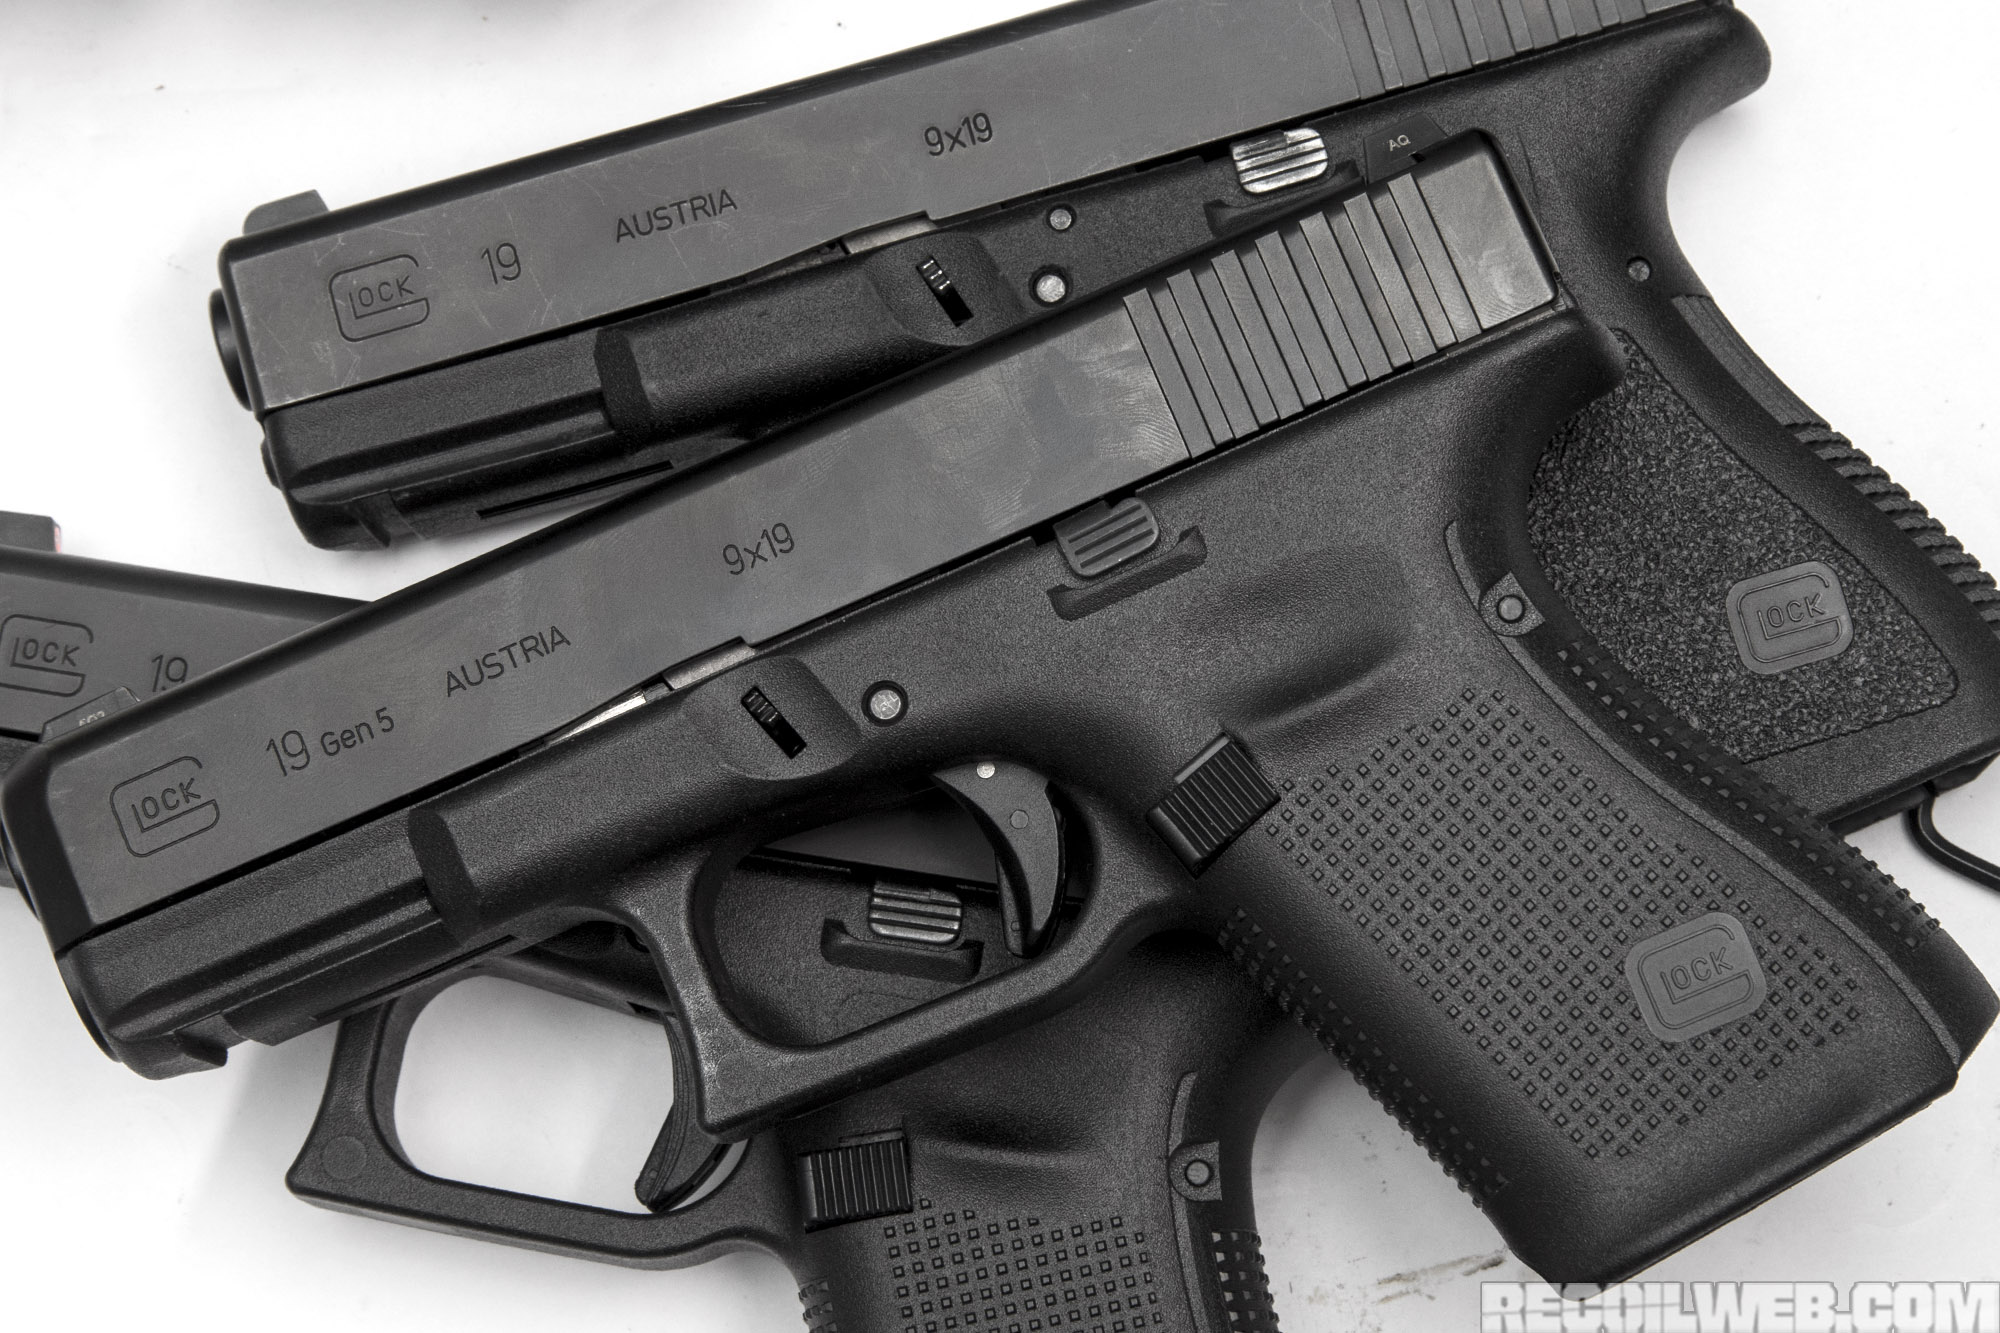 Here's the Full Reveal of the New Glock Gen5 Pistol | RECOIL